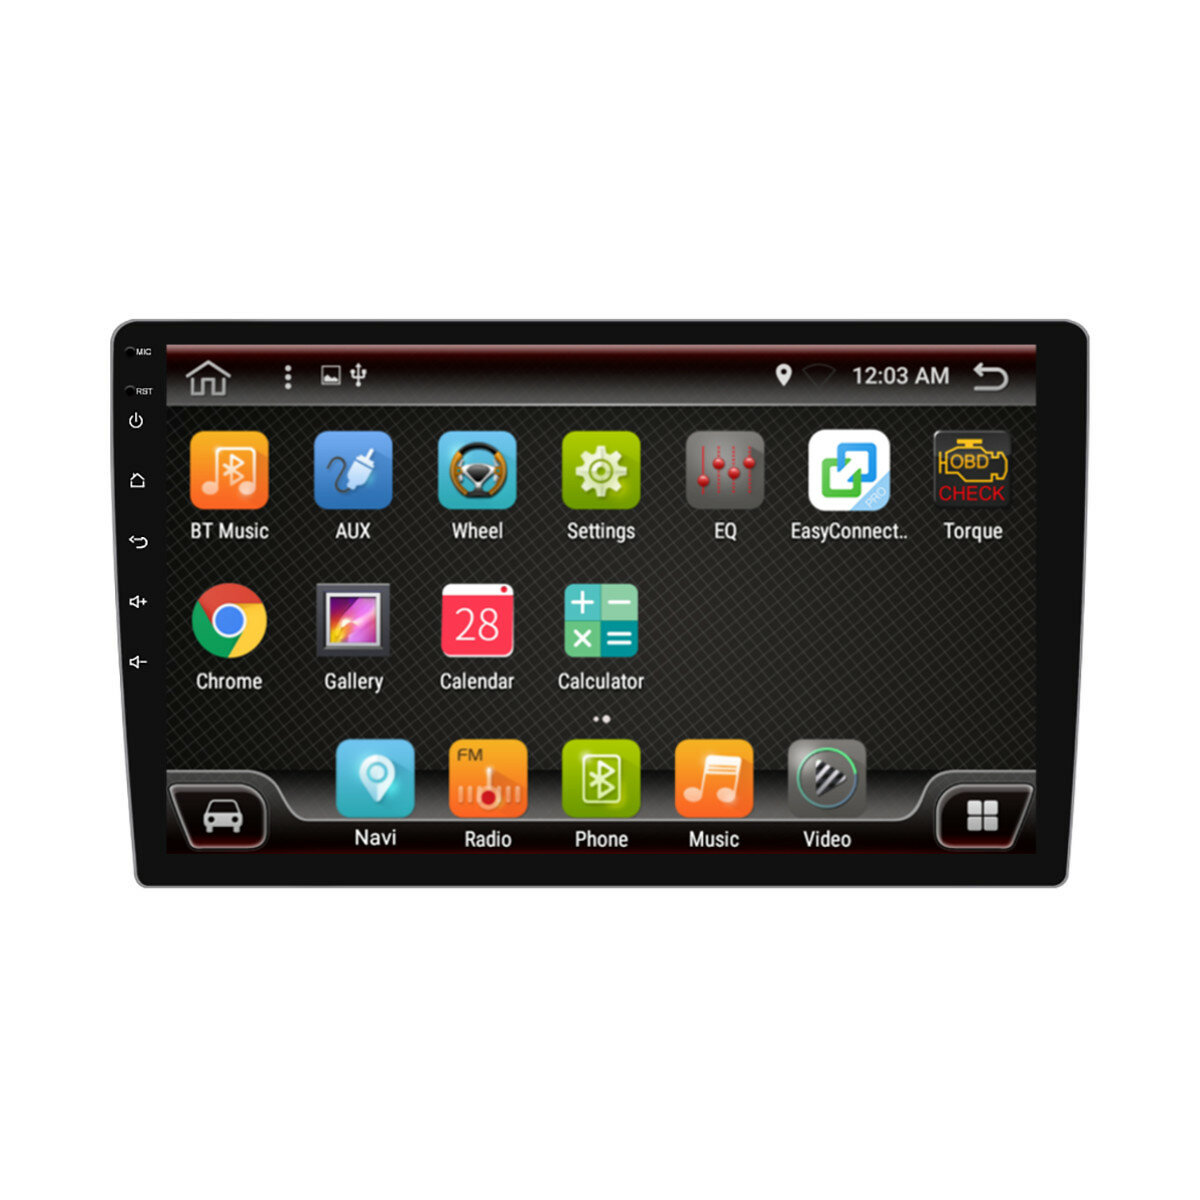 PX6 10.1 Inch 1 DIN 4 + 64G para Android 9.0 Coche Reproductor MP5 8 Pantalla táctil central estéreo GPS bluetooth RDS FM AM Radio